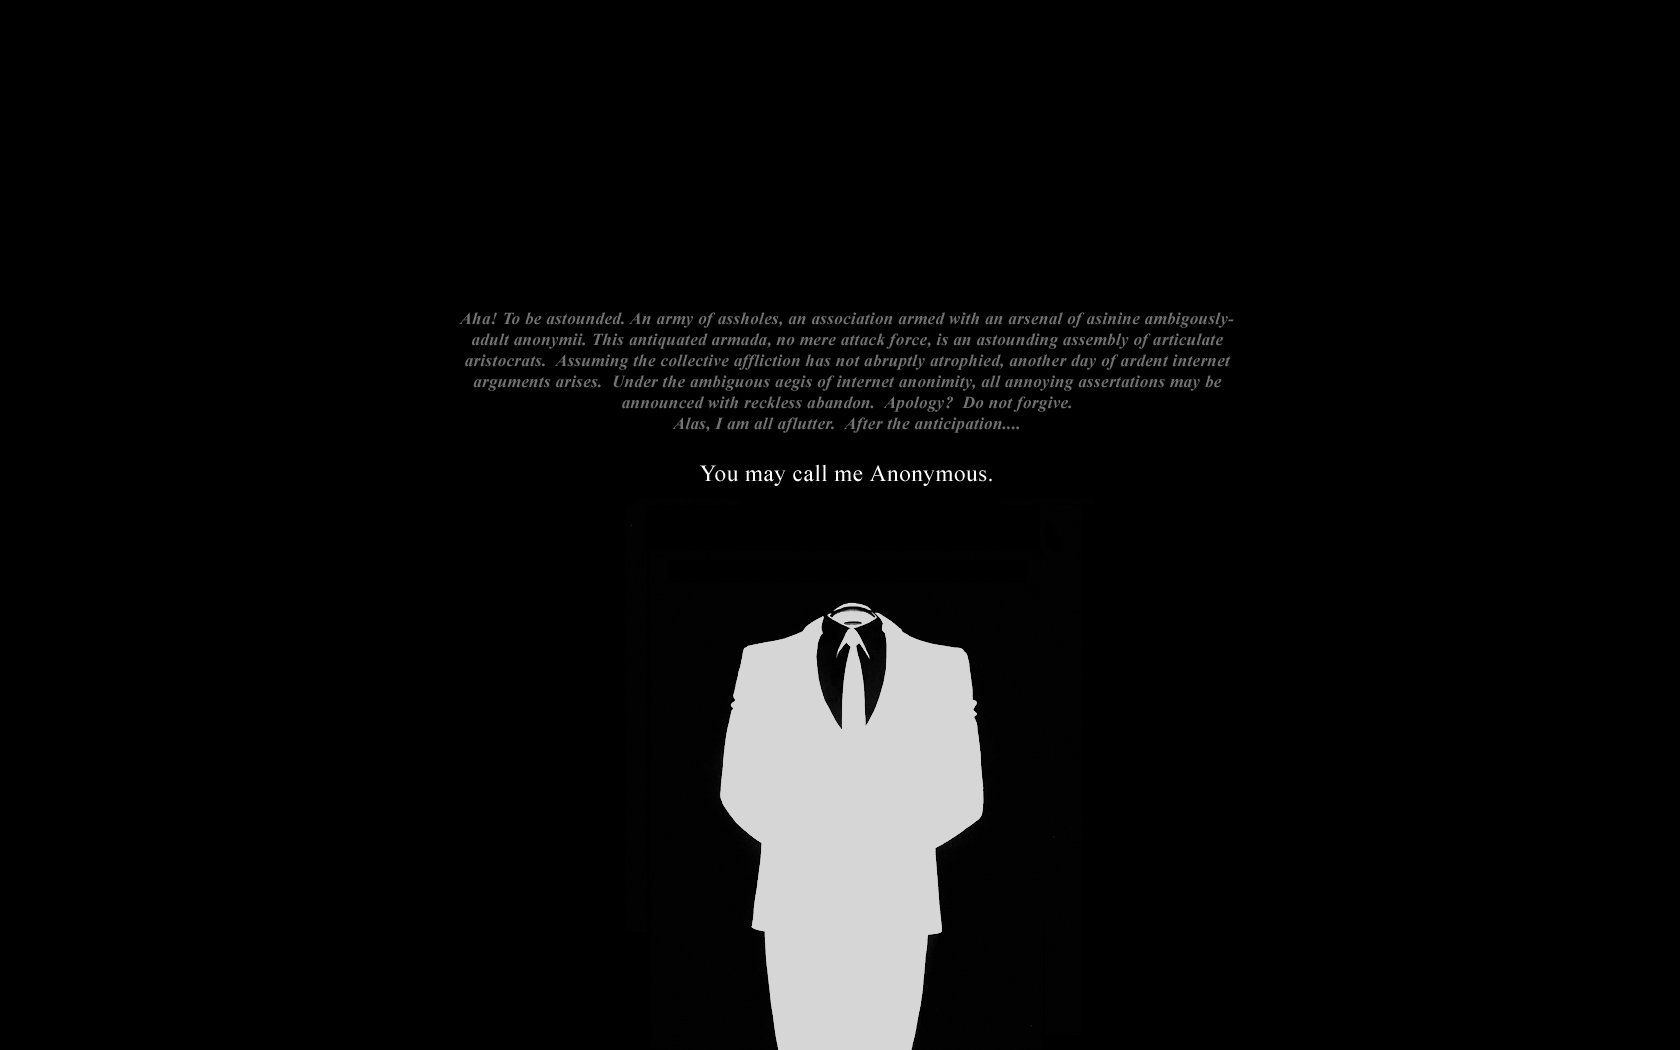 Anonymous hd wallpapers wallpapersafari - Hd wallpapers for laptop with quotes ...